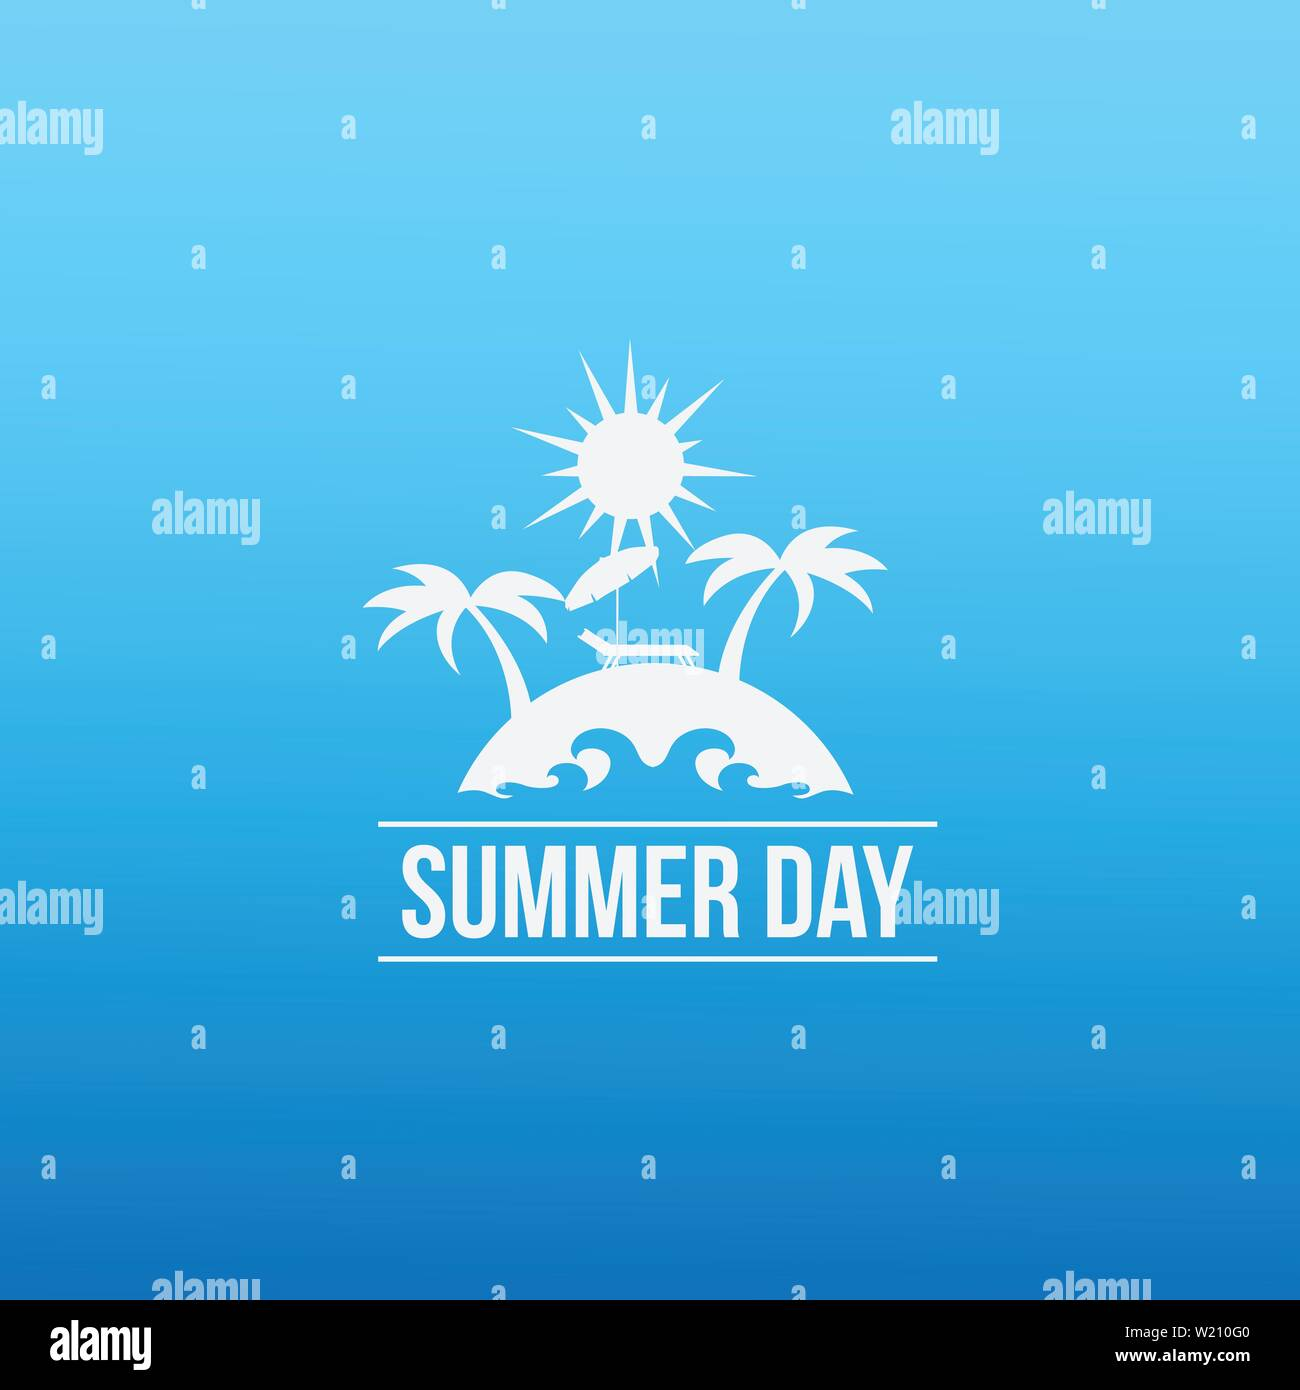 Summer beach sunny day vector design style illustrations - Stock Vector